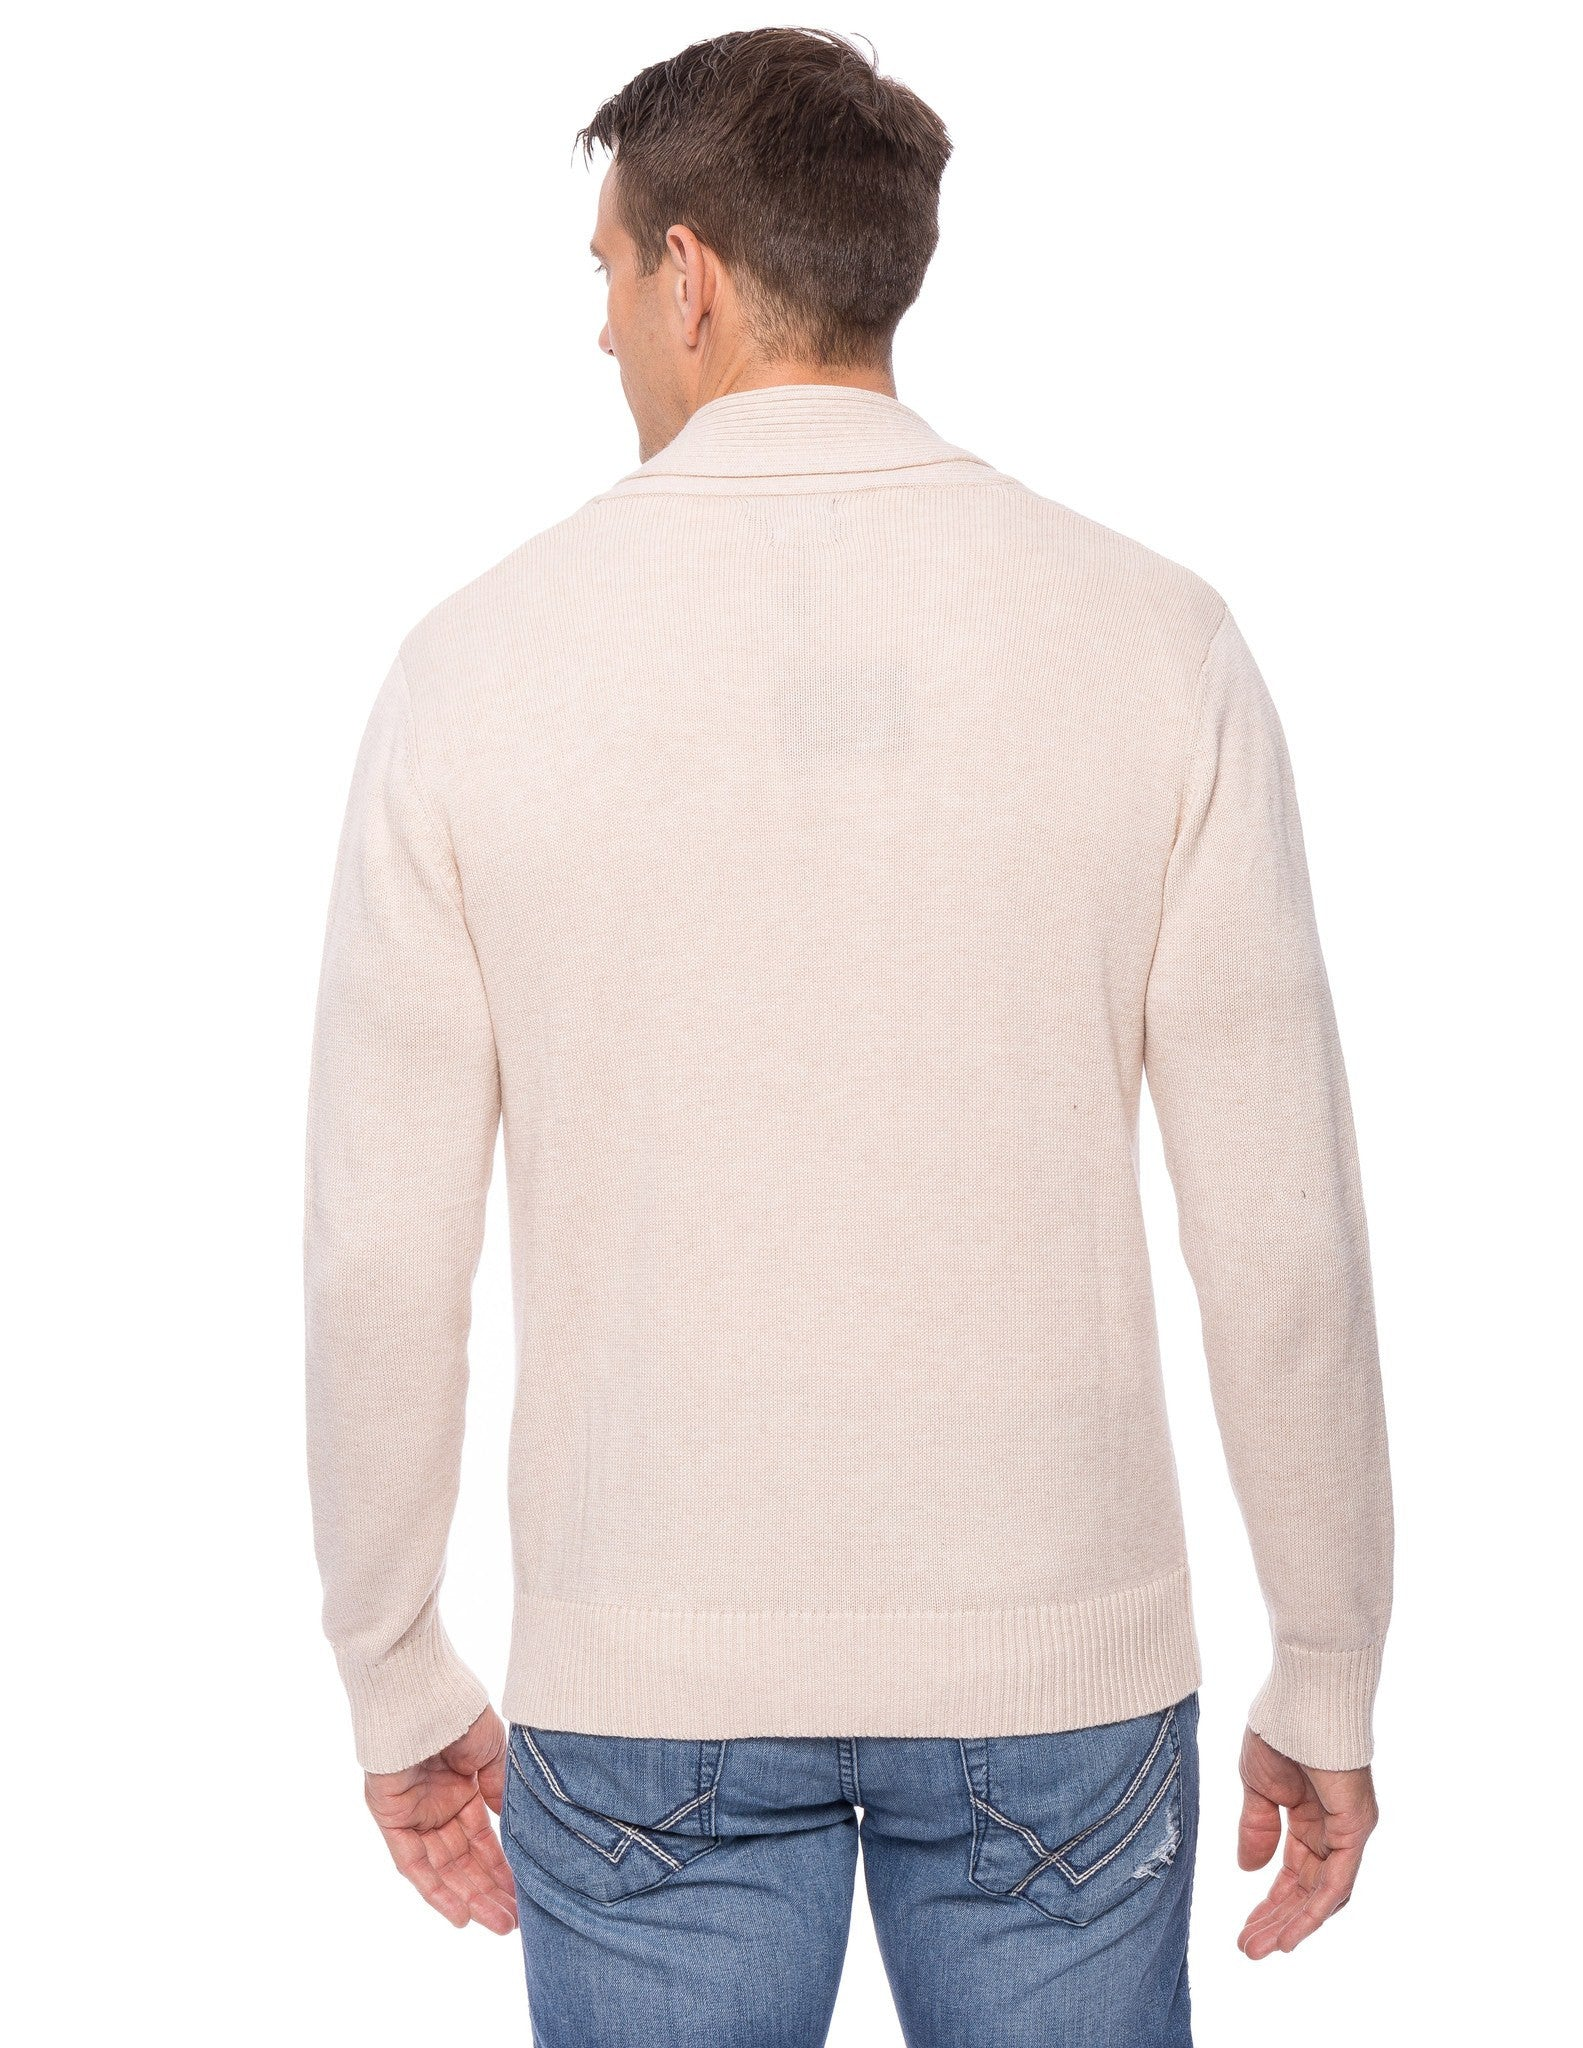 Tocco Reale Men's Cashmere Blend Shawl Collar Pullover Sweater - Stone